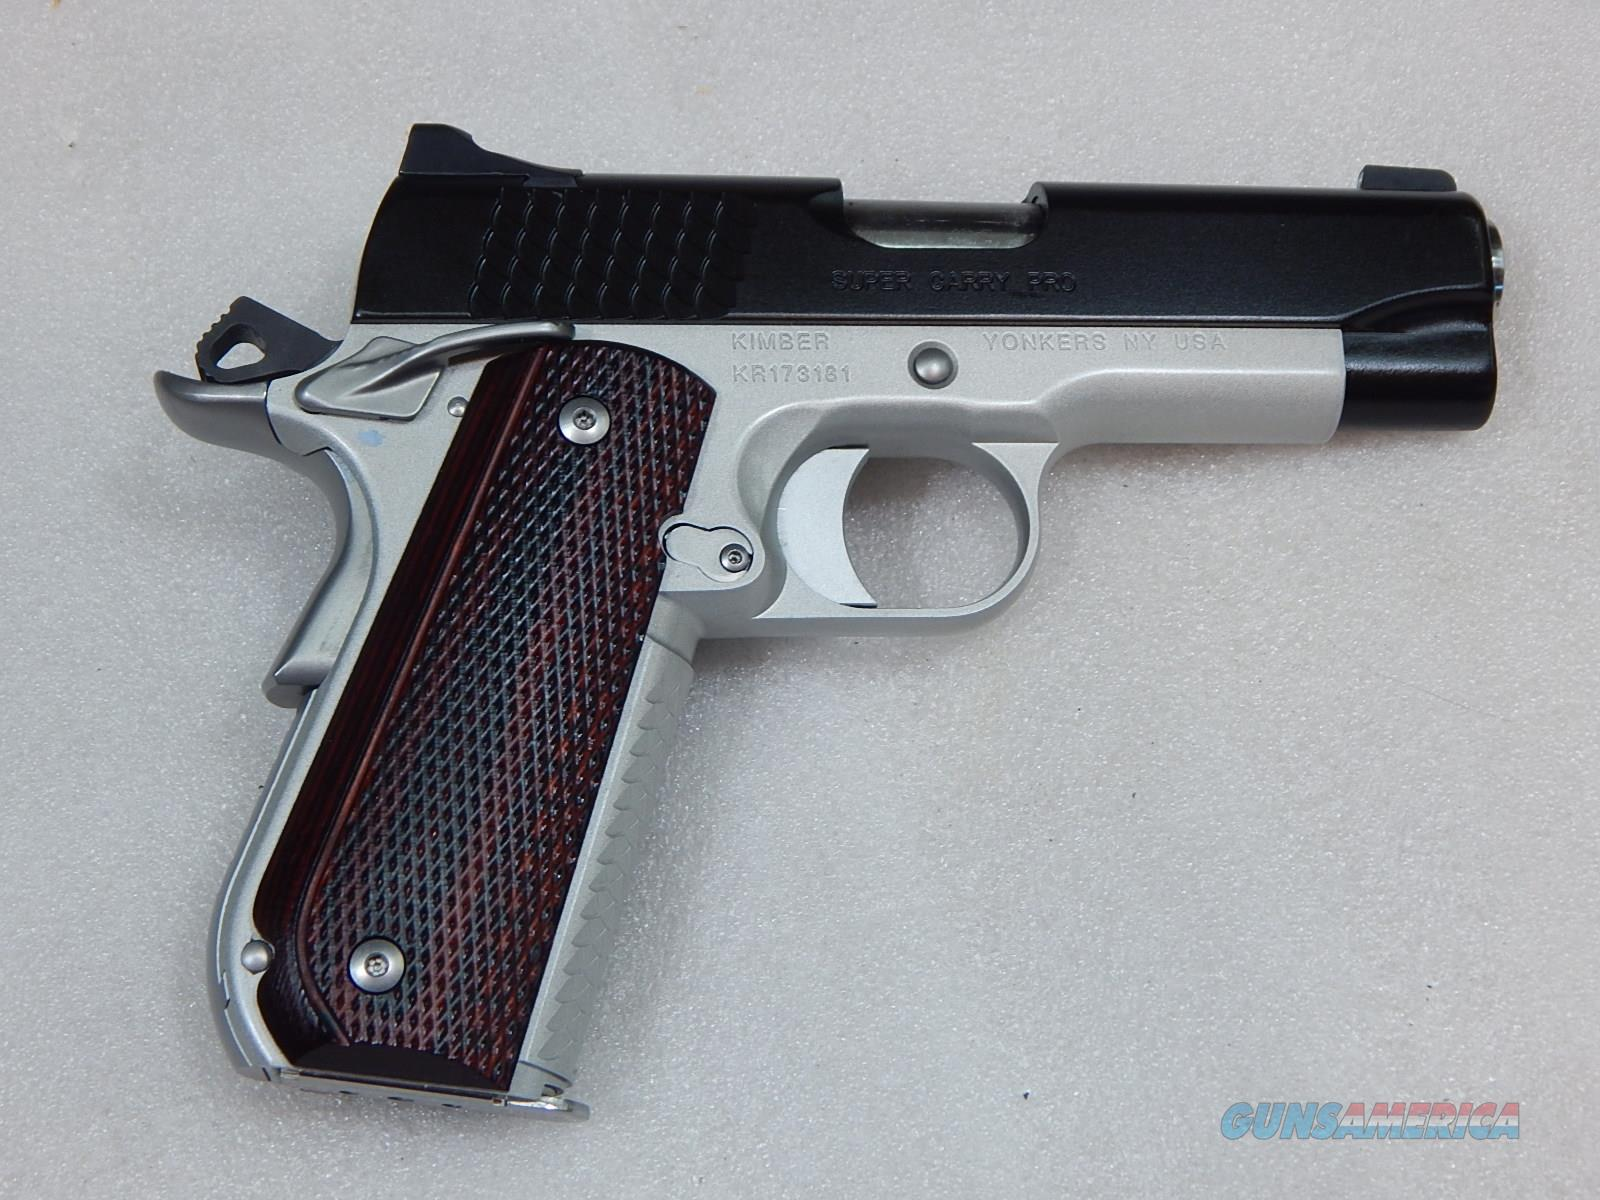 Kimber Super Carry Pro KR173181 NIB   Guns > Pistols > Kimber of America Pistols > 1911